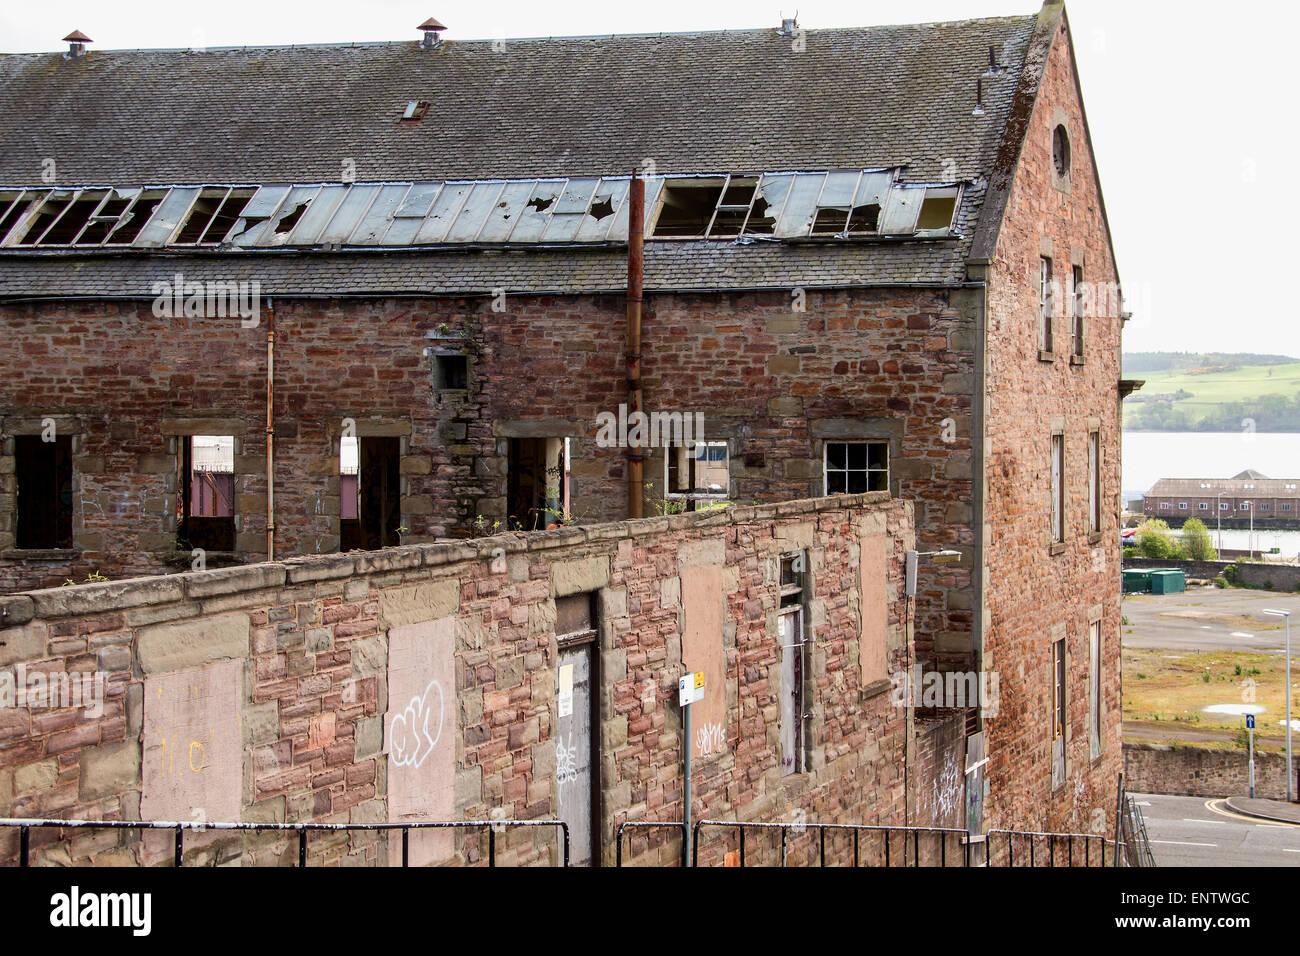 View at back of the 1836 derelict William Halley & Sons Ltd Jute Mill which is a Listed Building in Dundee,UK - Stock Image